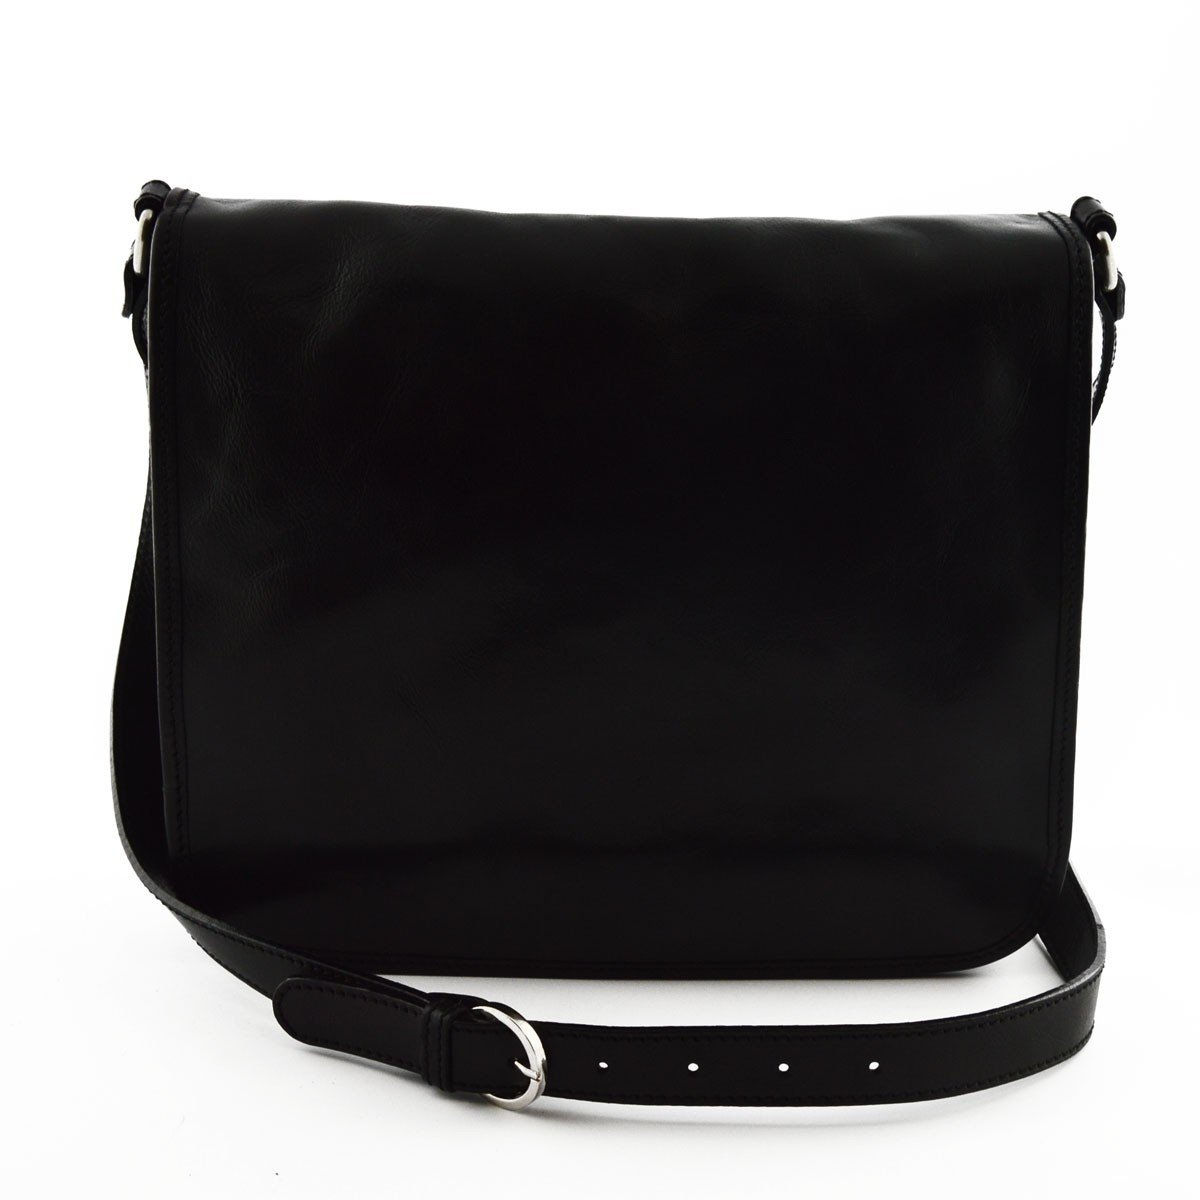 Made In Italy Genuine Leather Messenger Bag 2 Compartments Color Black - Man Bag B01BL5AVEW